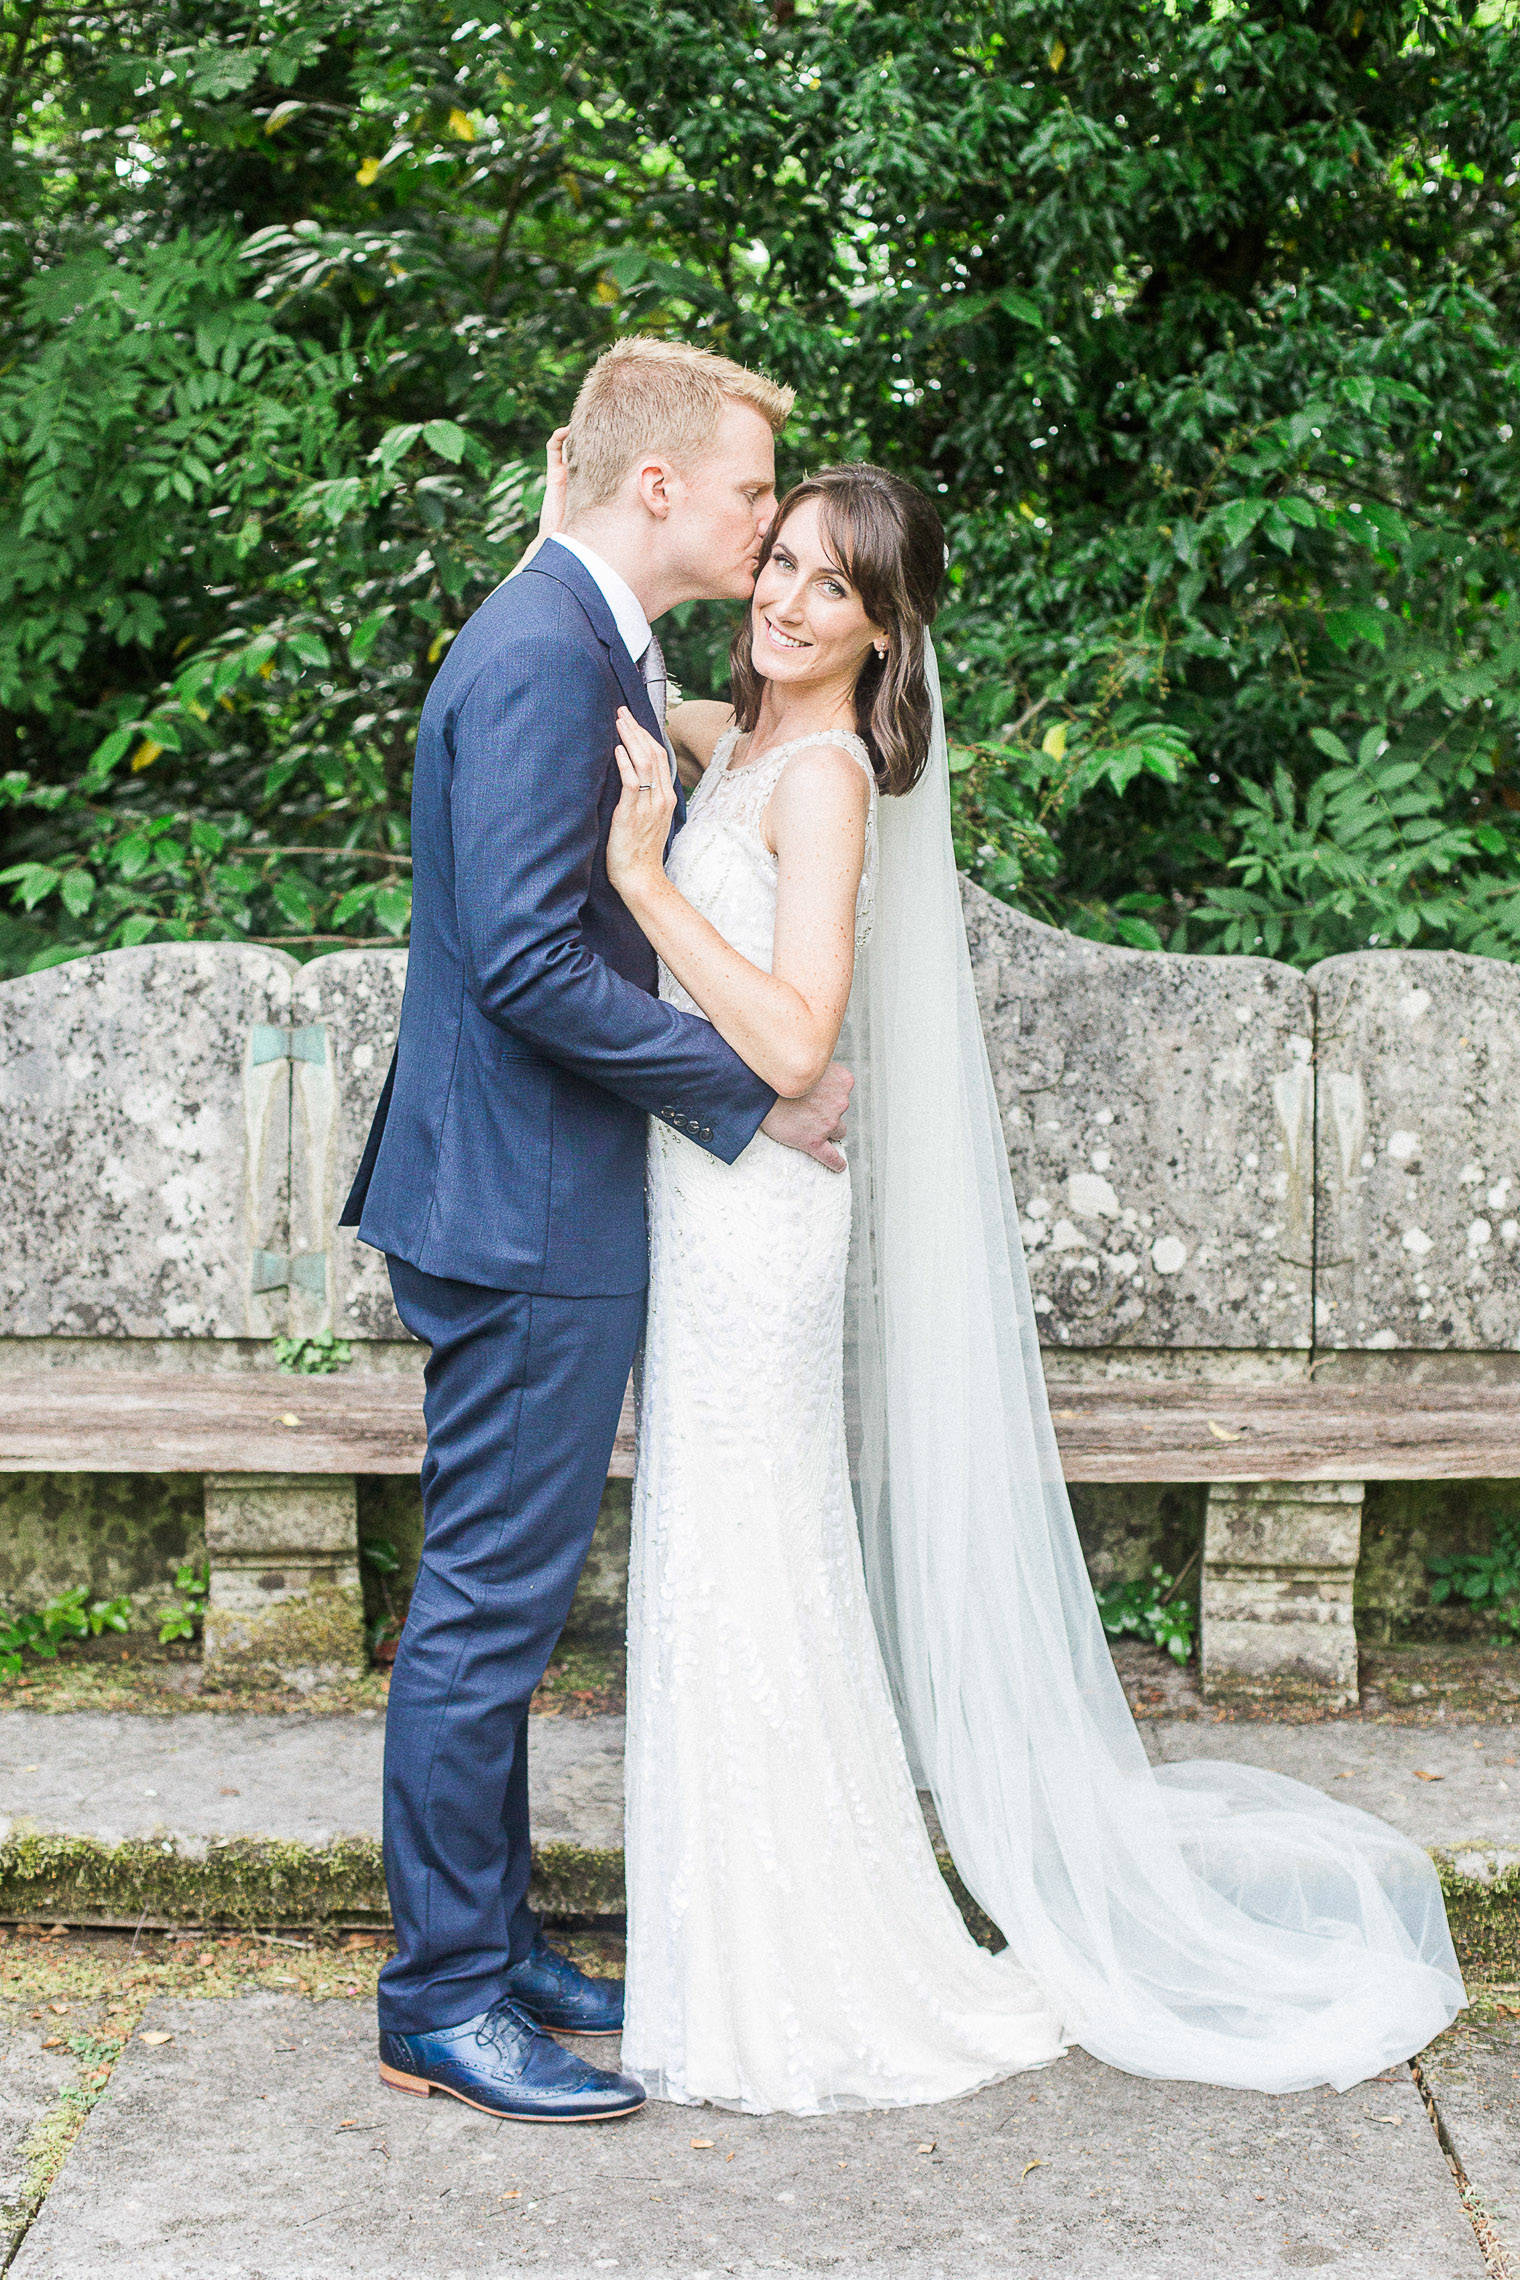 lifestyle-blogger-claire-wainwright-of-the-green-eyed-girl-shares-her-wedding-49